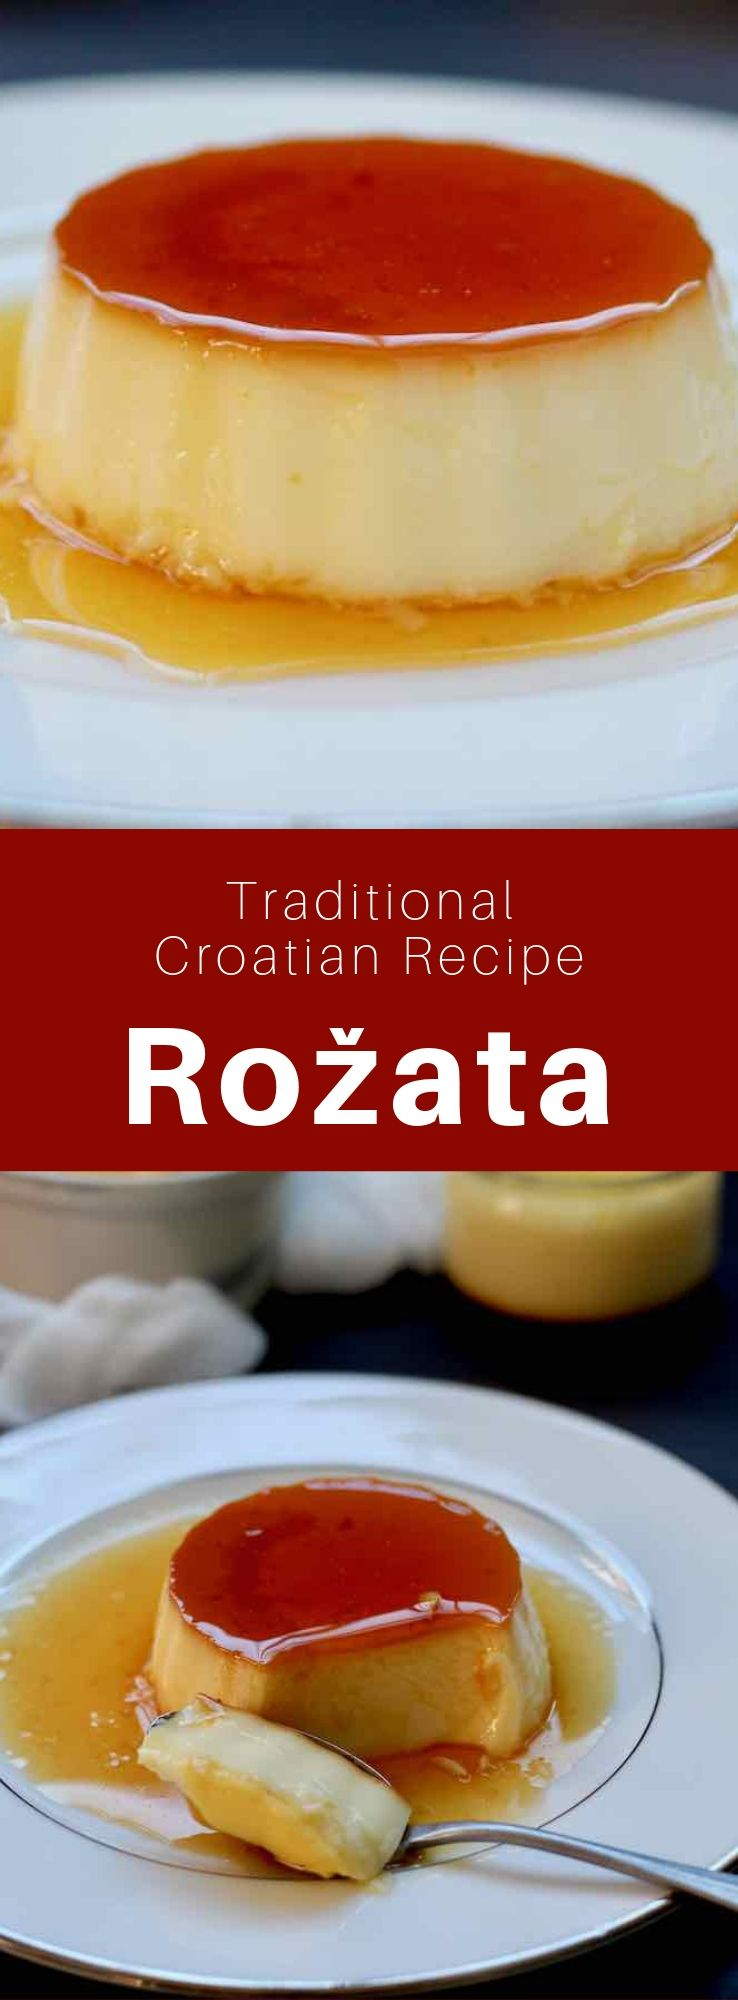 Rožata, rozata, rožada or rozada is a Croatian creamy pudding from the Dubrovnik region that looks like custard and crème brûlée. #Croatia #CroatianCuisine #CroatianFood #CroatianRecipe #BalkanRecipe #BalkanCuisine #BalkanFood #CremeCaramel #Custard #WorldCuisine #196flavors